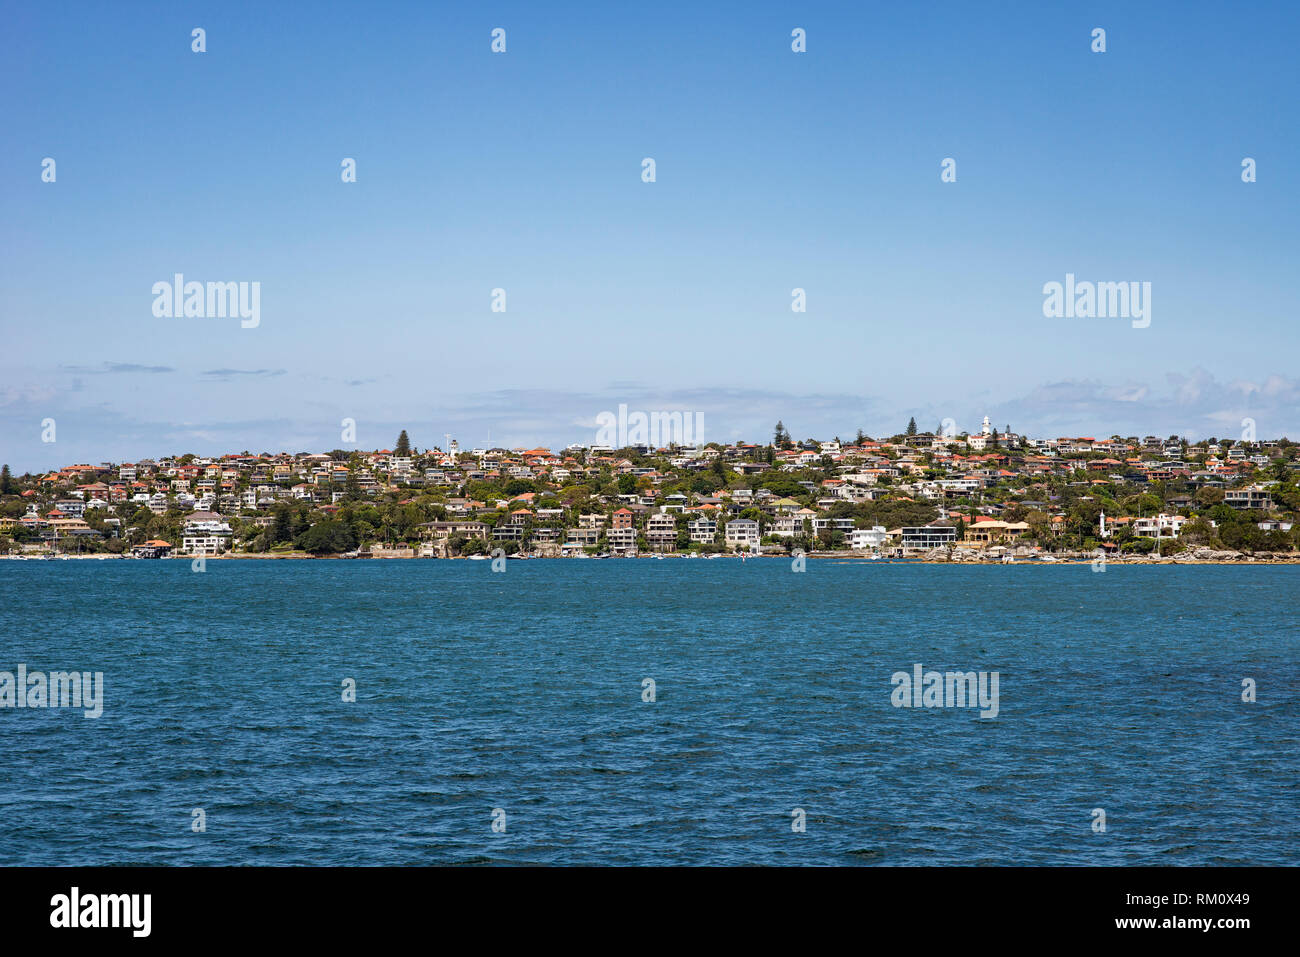 Ferry ride from Circular Quay to Manly in Sydney. Stock Photo